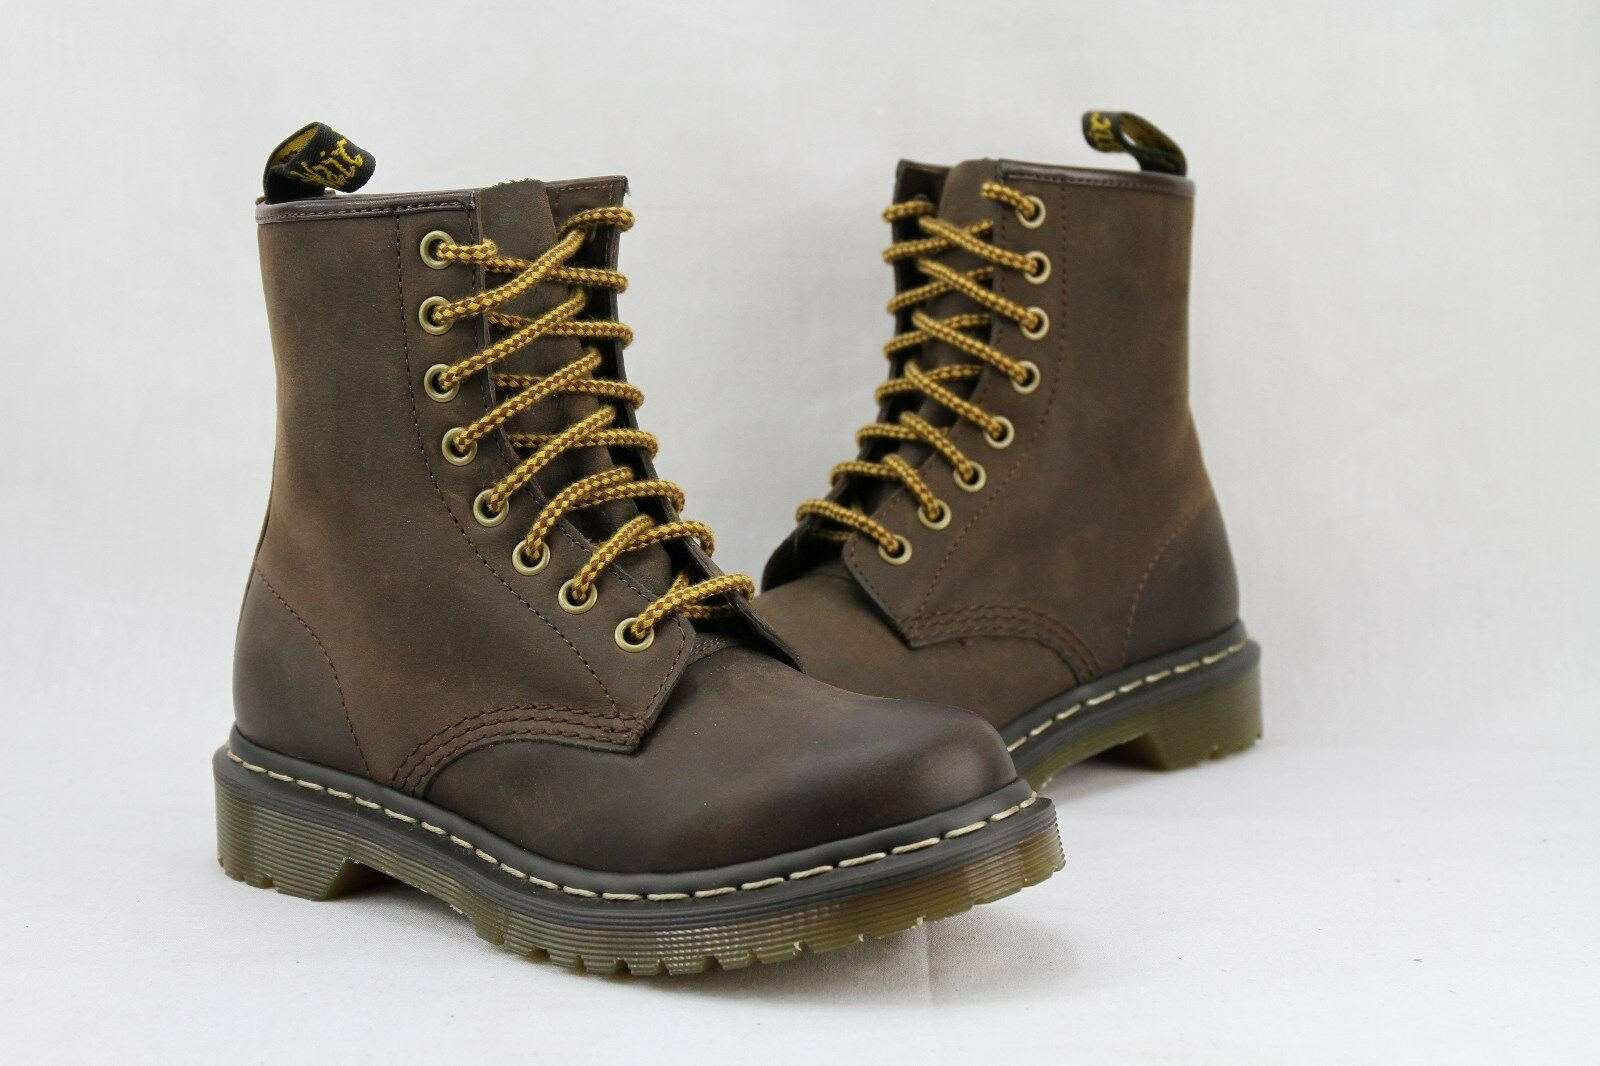 Dr. Martens Women's 1460 Work Boots Burnished Wyoming R16164201 Sizes: 5 5 Sizes: - 10 9623aa